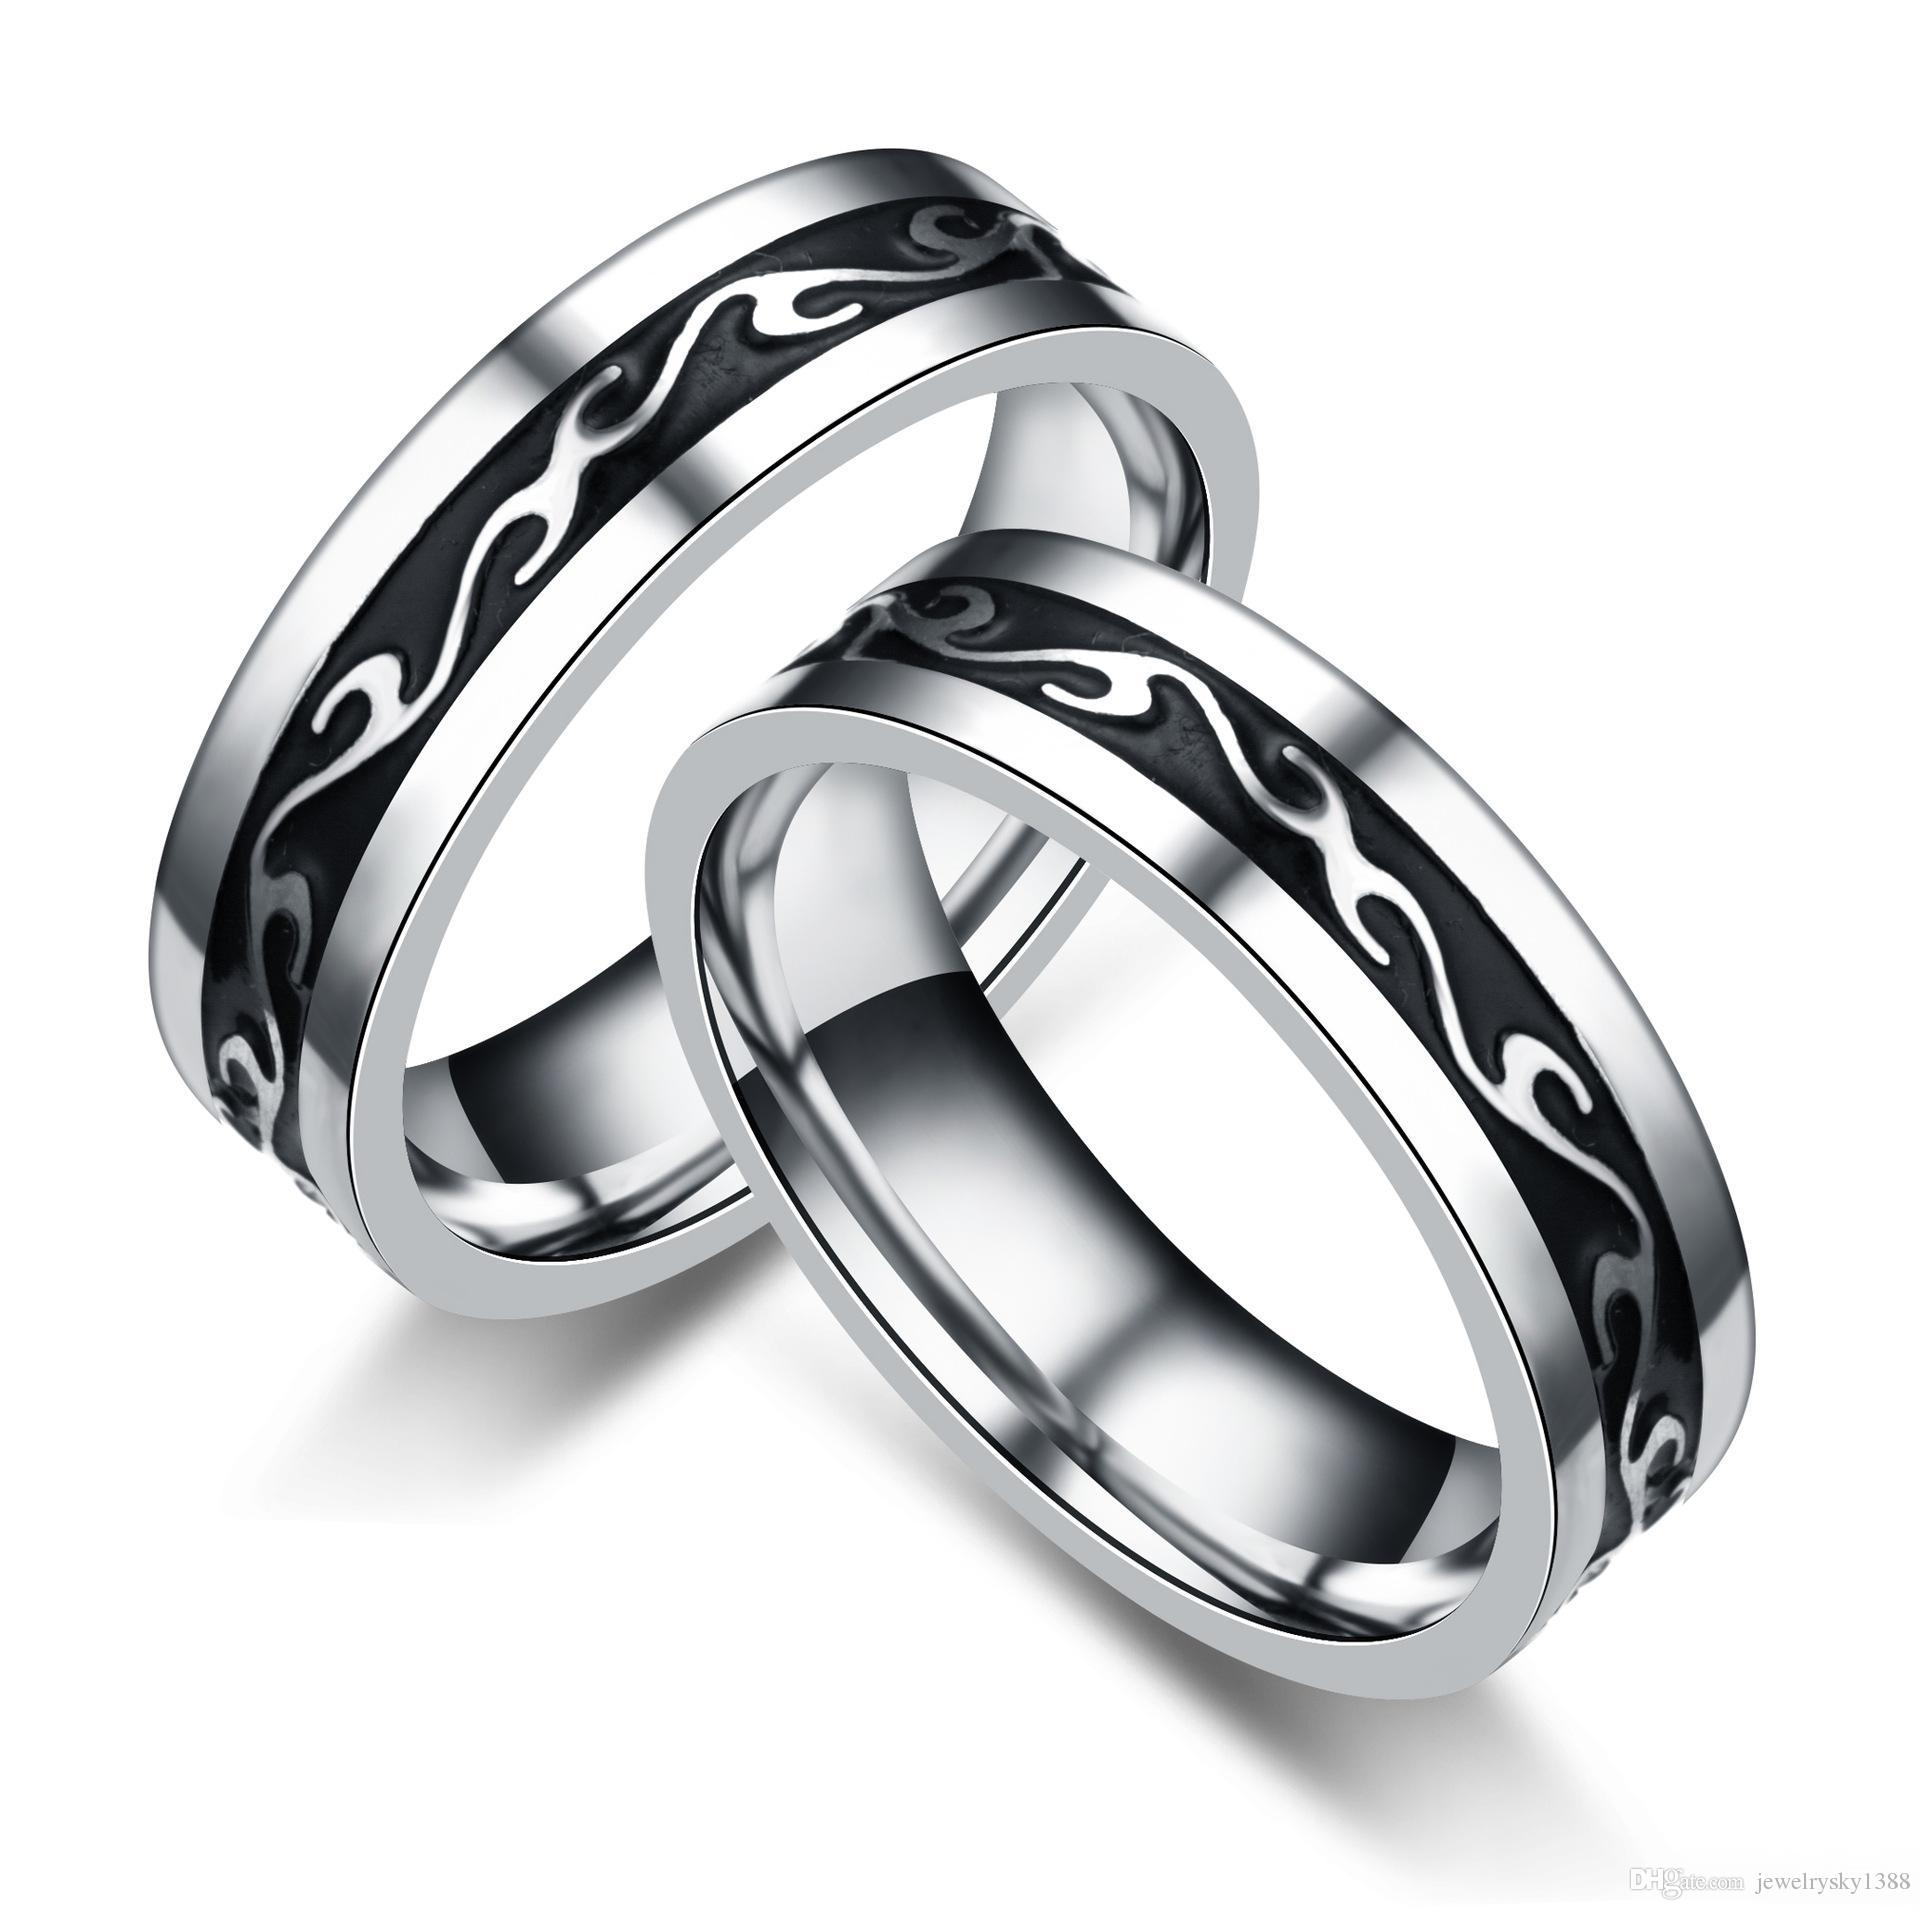 Newest Design Titanium Steel Rings Fashion Stainless Steel Men's Dragon Pattern Rings Wedding Bands for Men jewelry